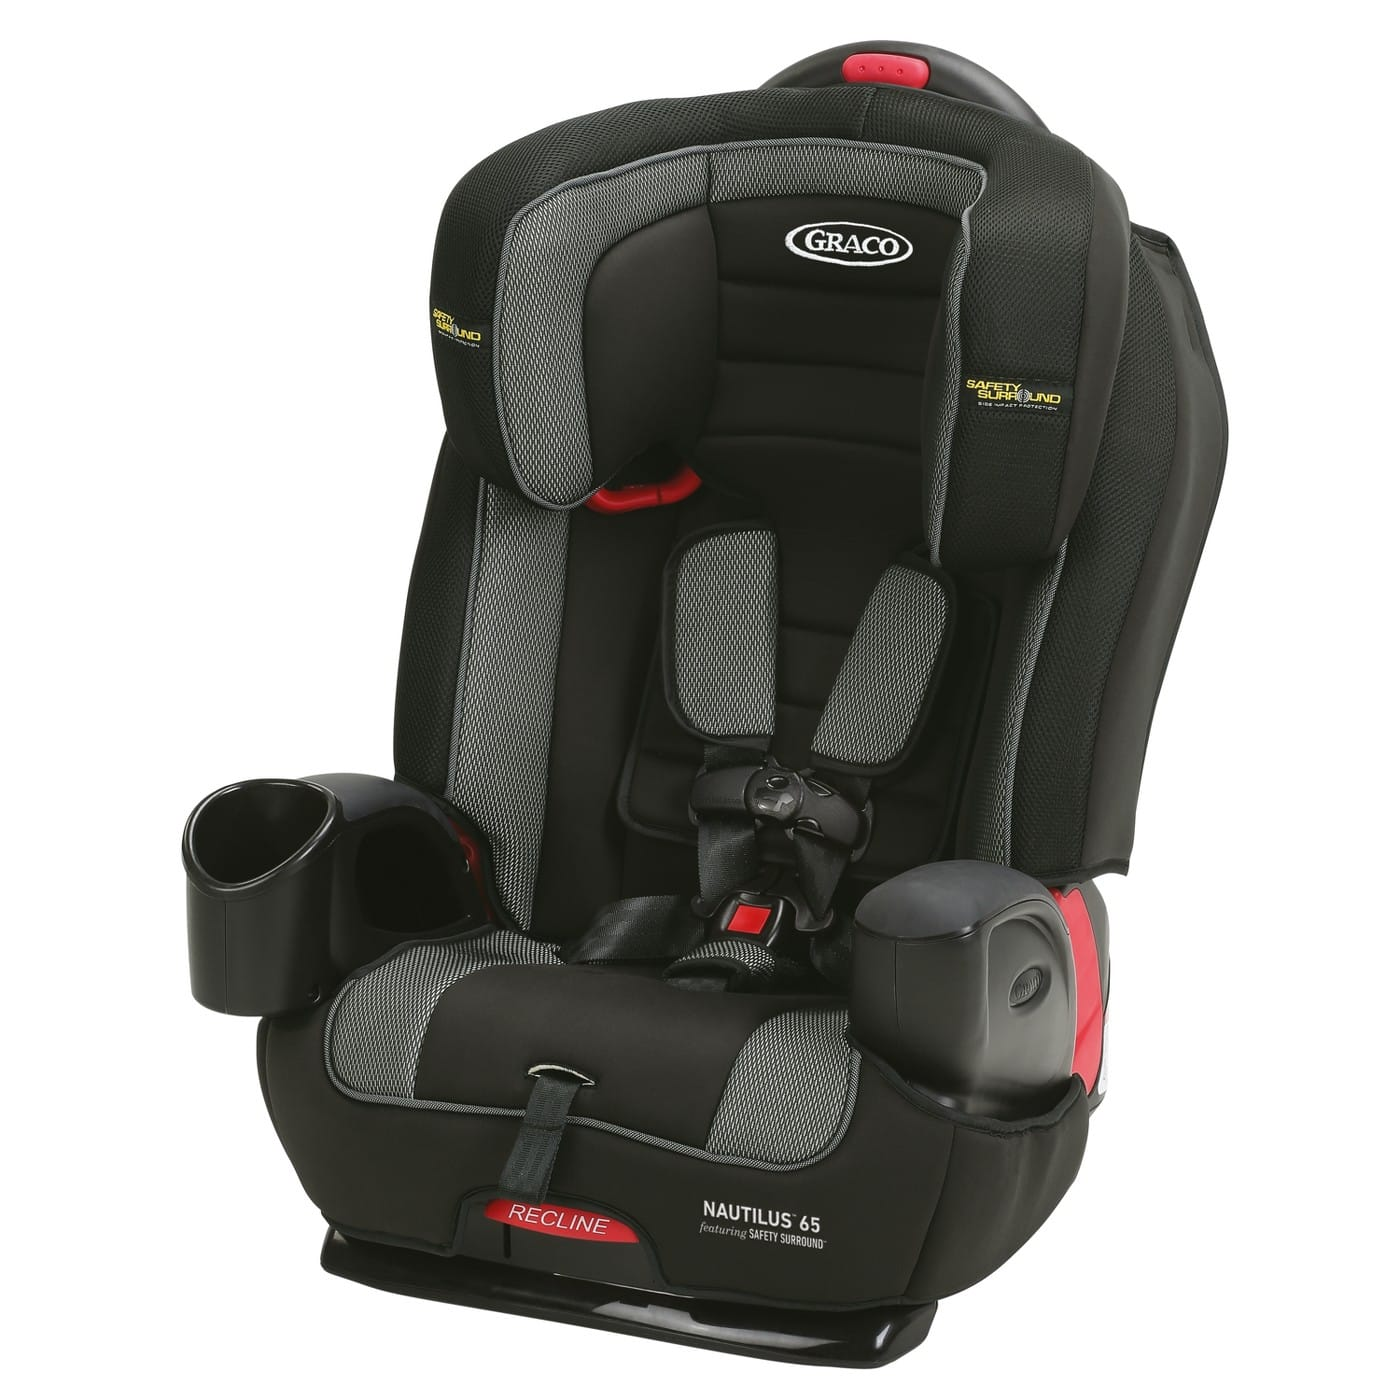 c34e5fc23 Select Graco carseats for 50% off on Target with RedCard  85.5 ...